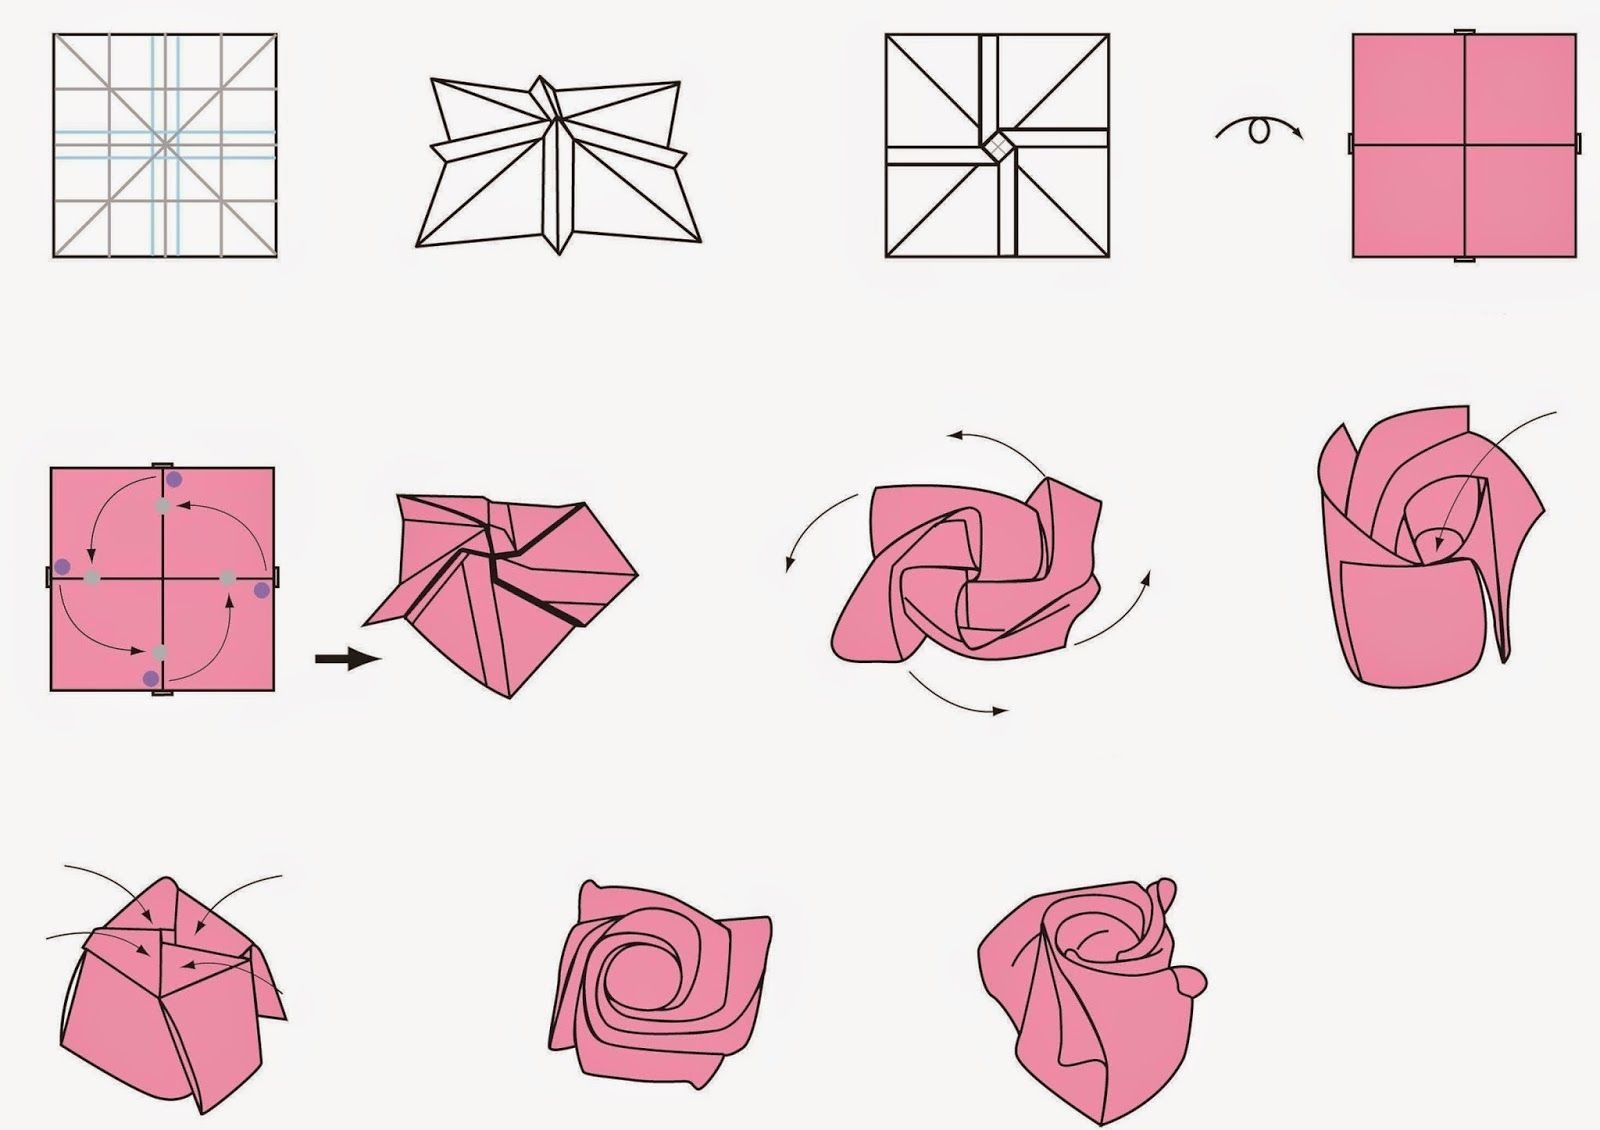 Free Printable Cards: Free Printable Origami Rose | Papercutting - Free Easy Origami Instructions Printable